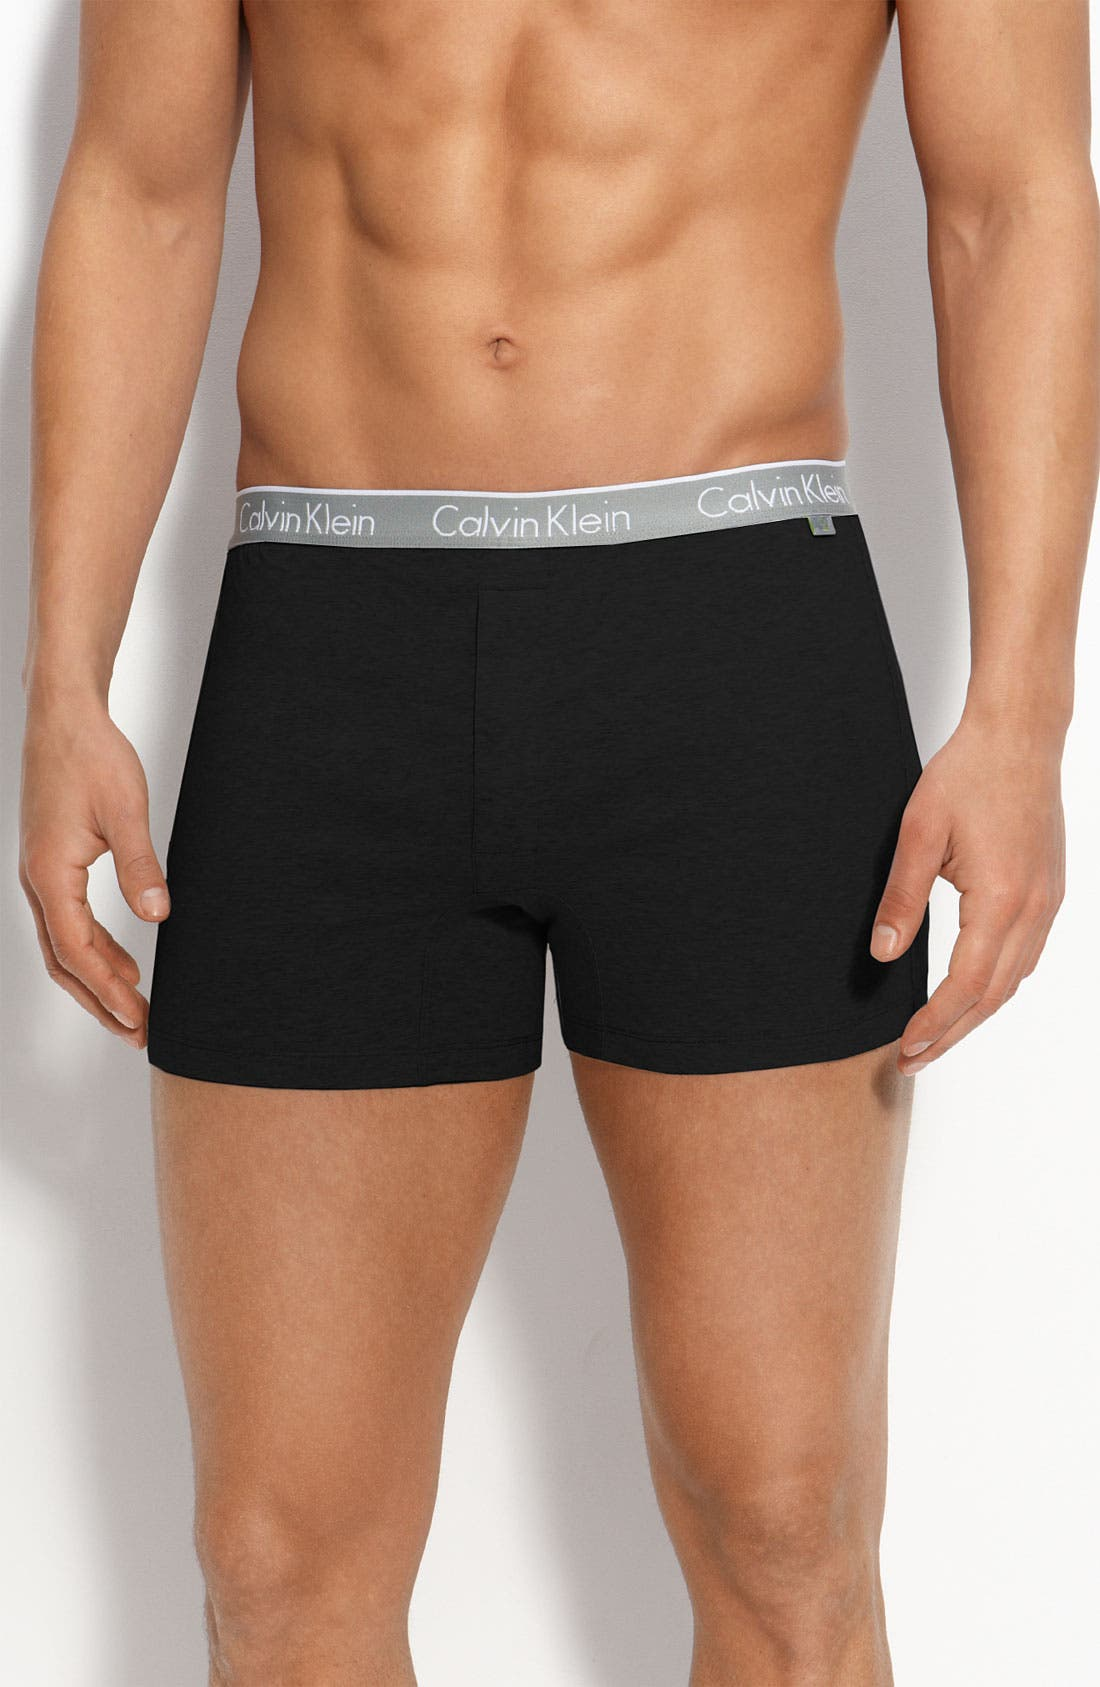 Alternate Image 1 Selected - Calvin Klein 'ck one - U8503' Stretch Cotton Boxer Shorts (Online Only)